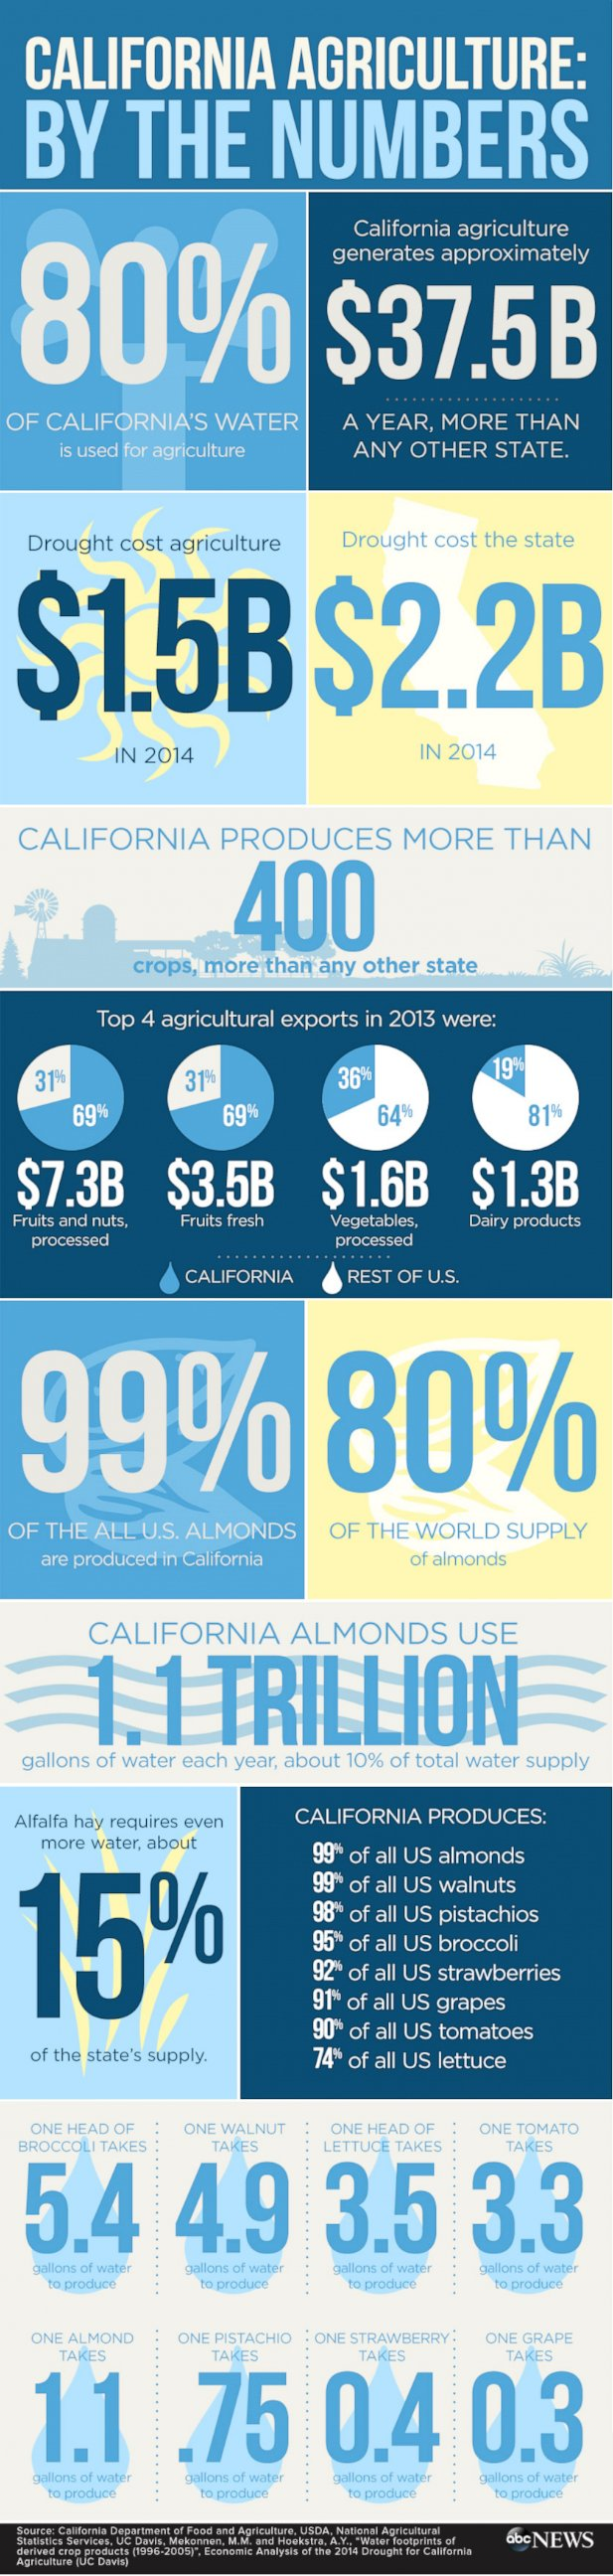 990_CA_AGRICULTURE_BTN_infographic_150406_02